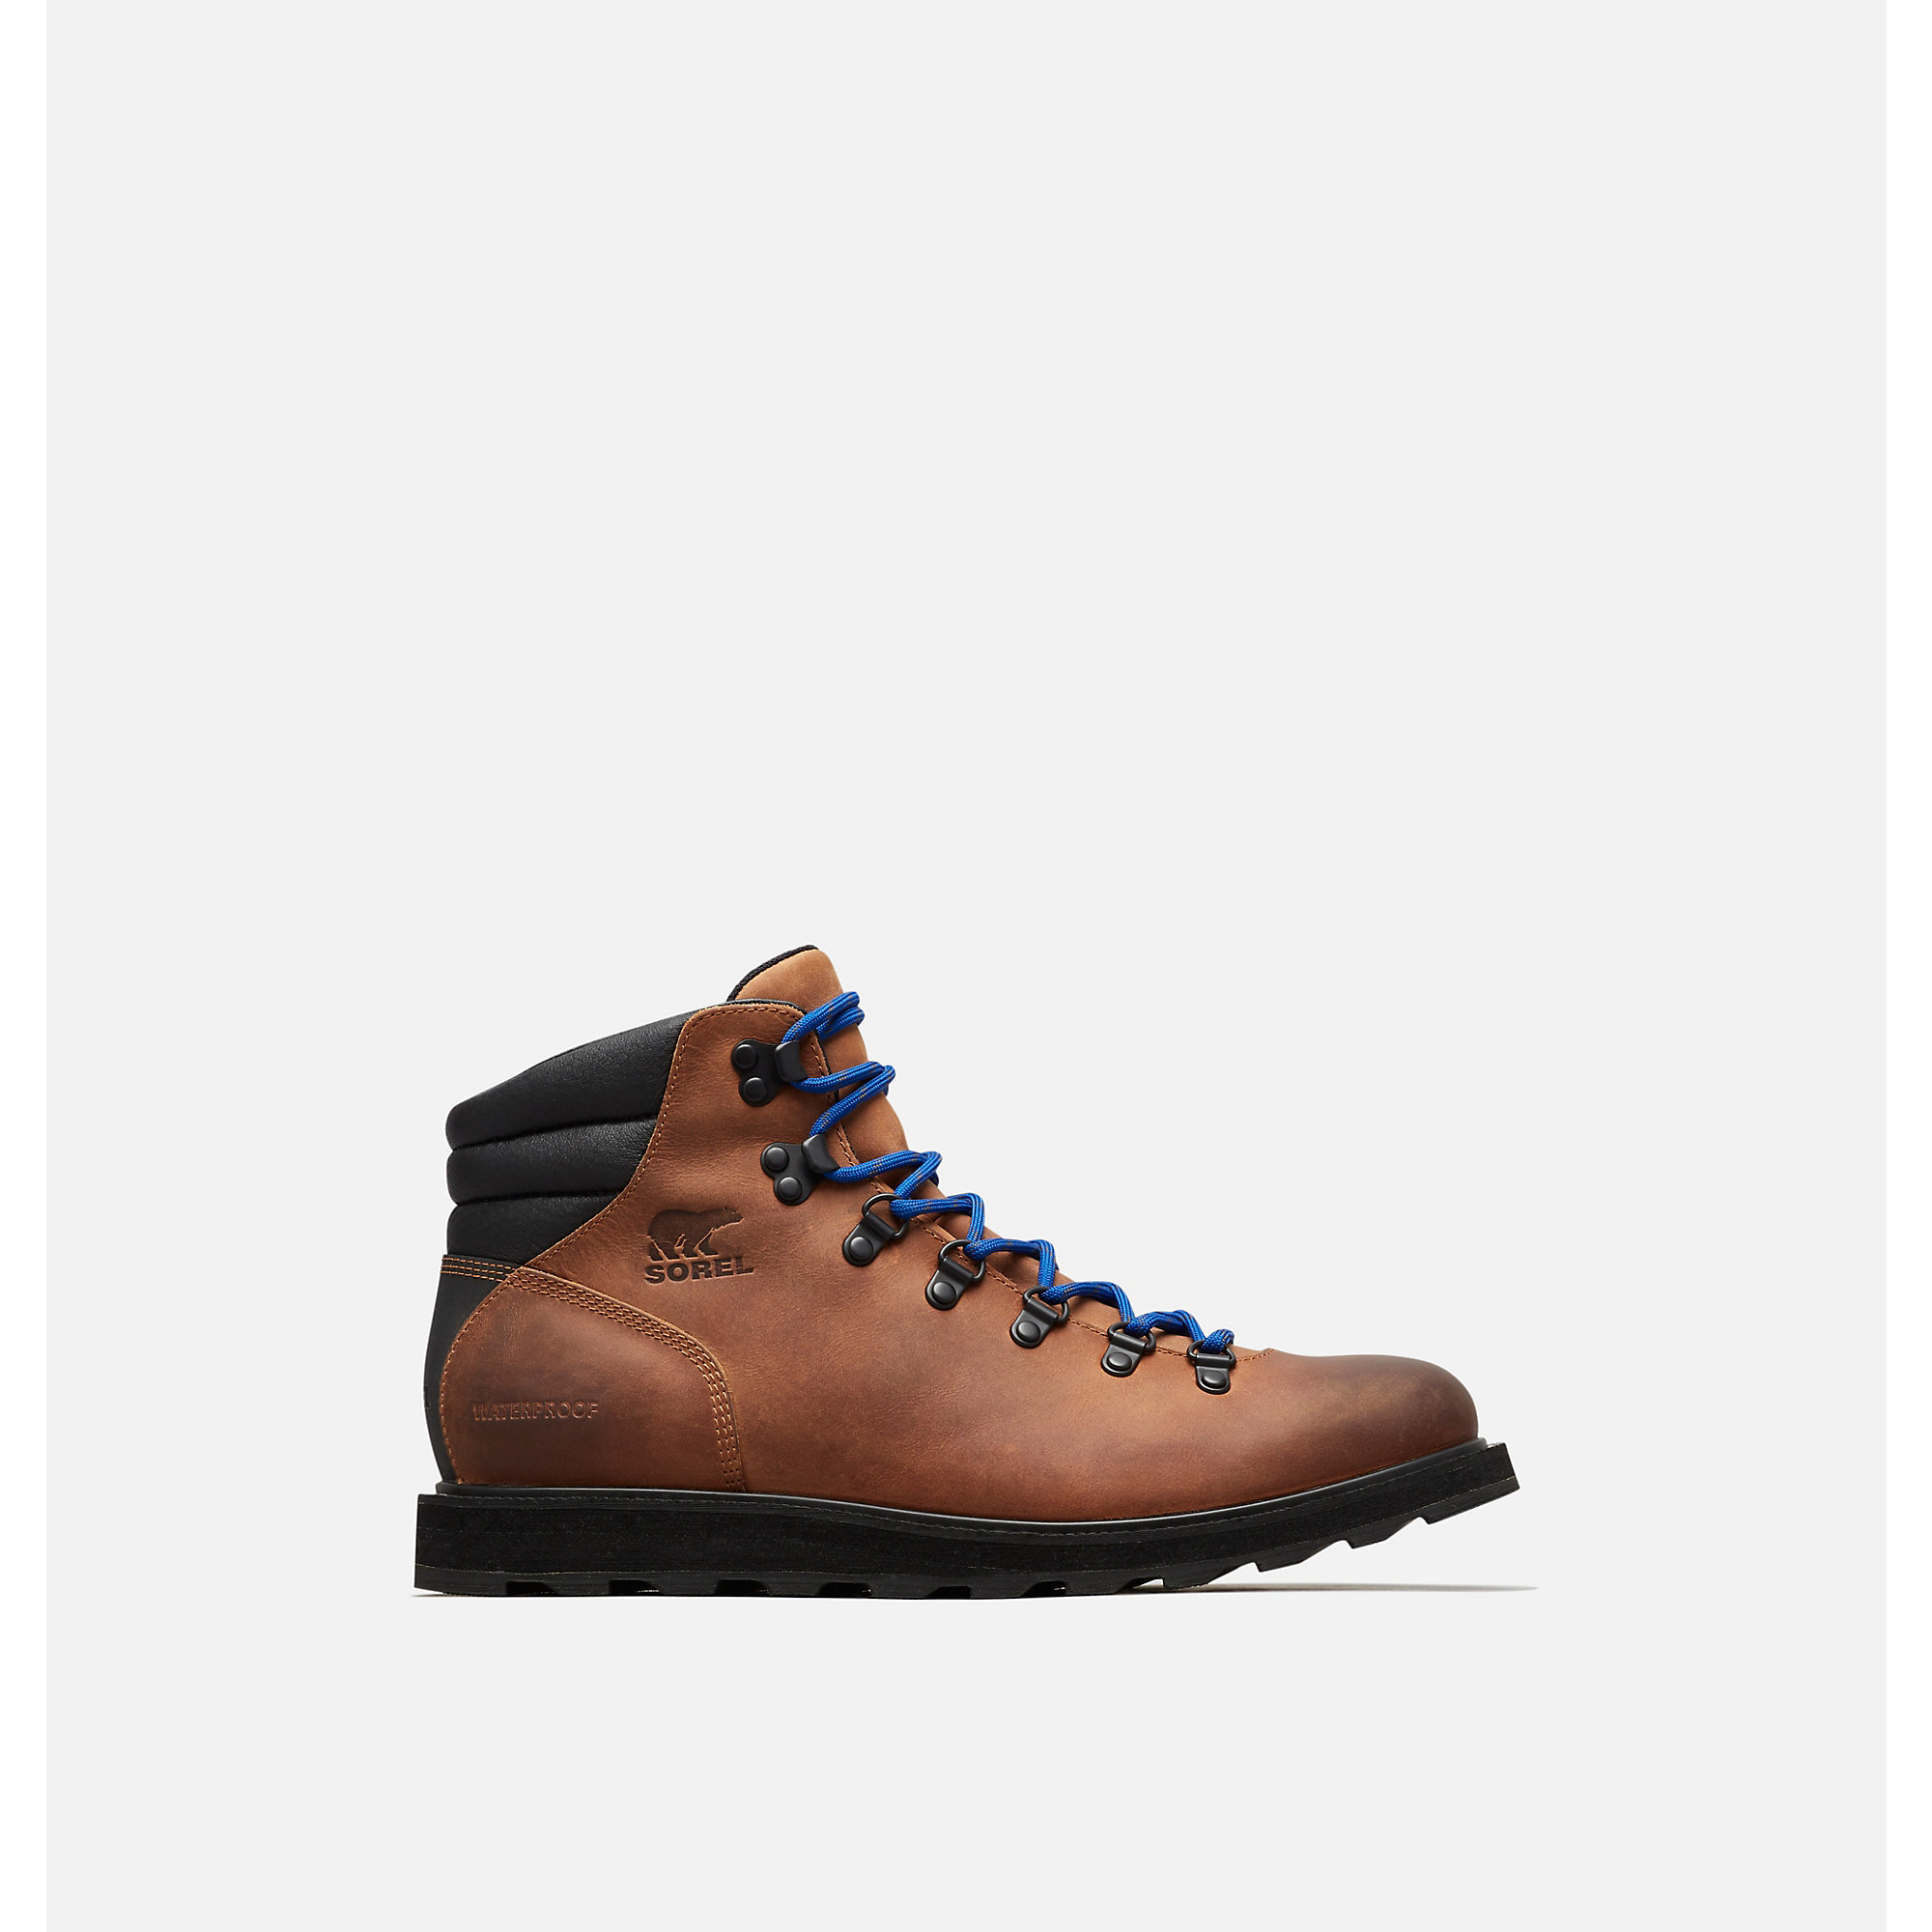 Sorel Labor Day Promotion Codes Coupon Code 2017